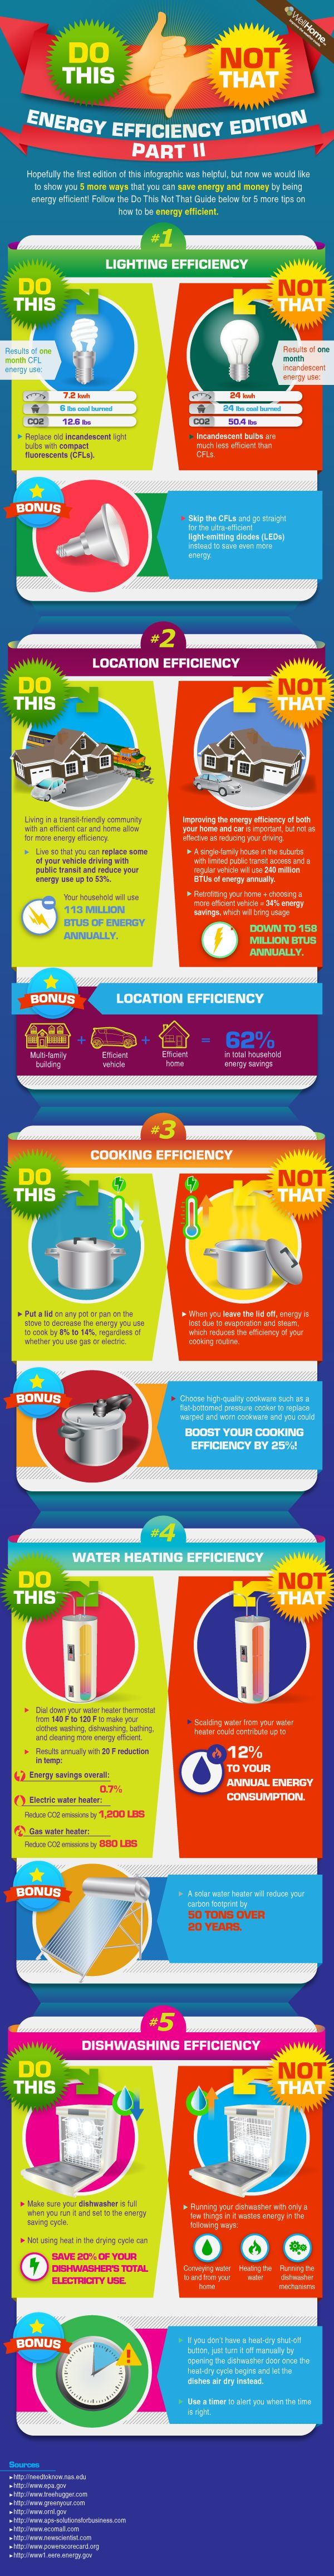 What are the best ways of saving electricity in your home? The good folks at wellhome have designed this infographic that takes you through some of the basic steps in saving electricity in your house. With current electricity prices being so high across the world, its definitely worth a read.